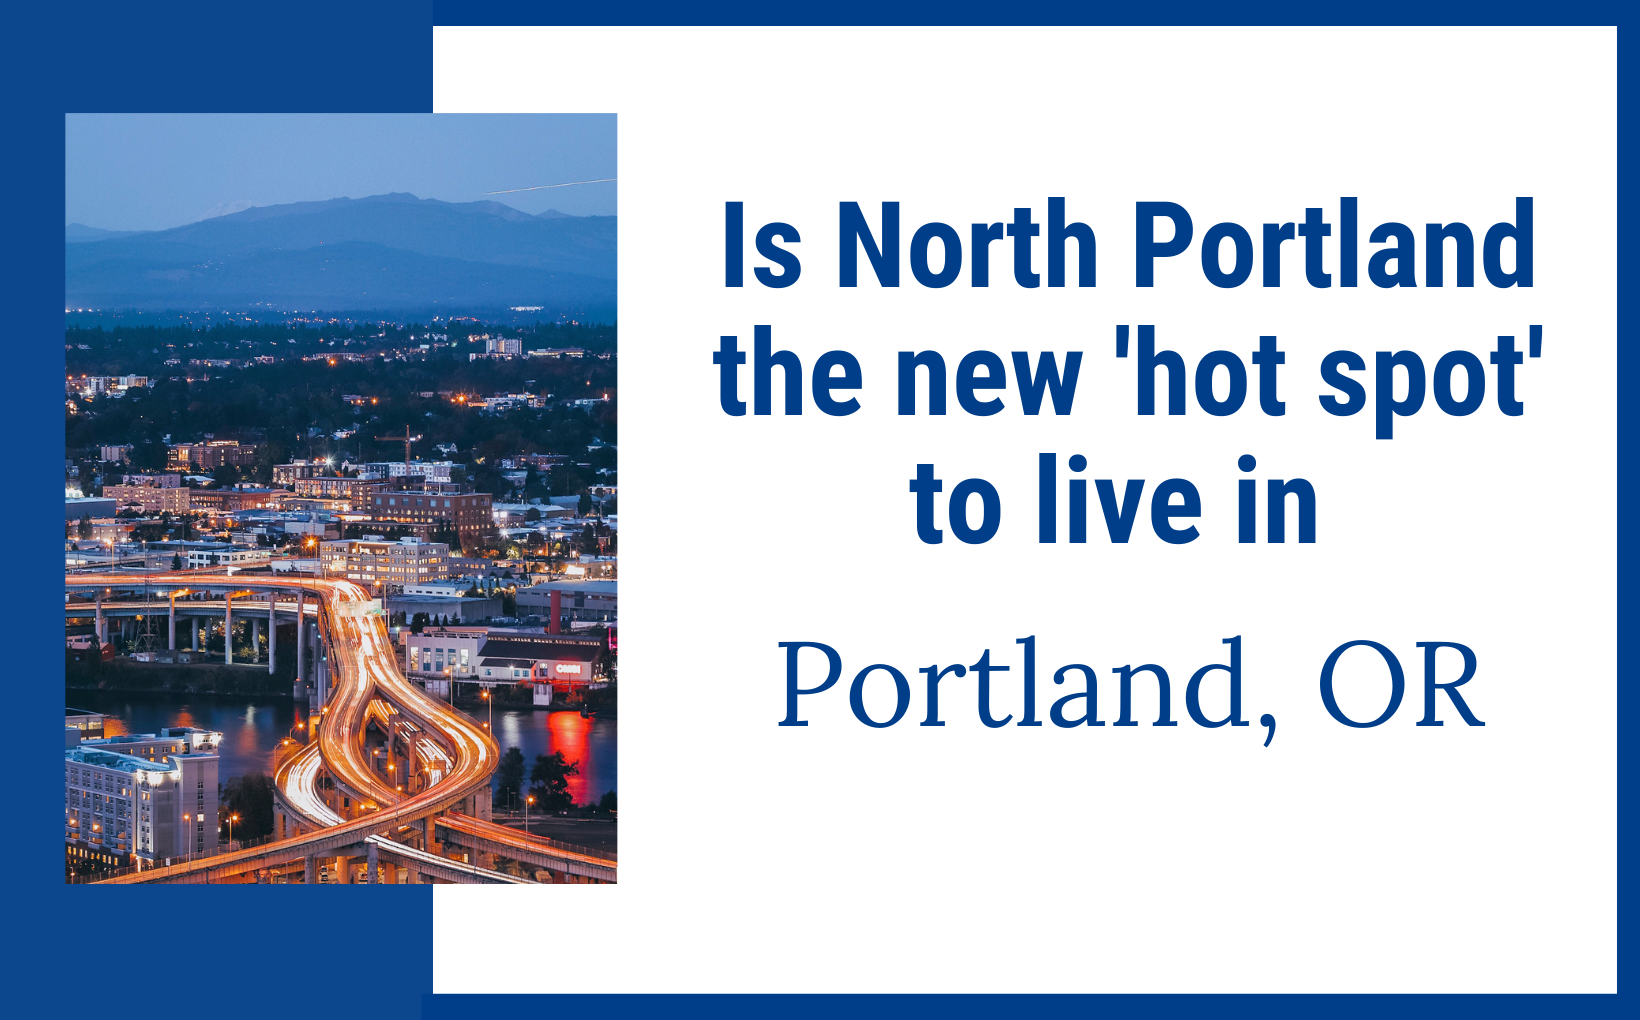 Is North Portland the new hot spot to live in Portland, Or feature image